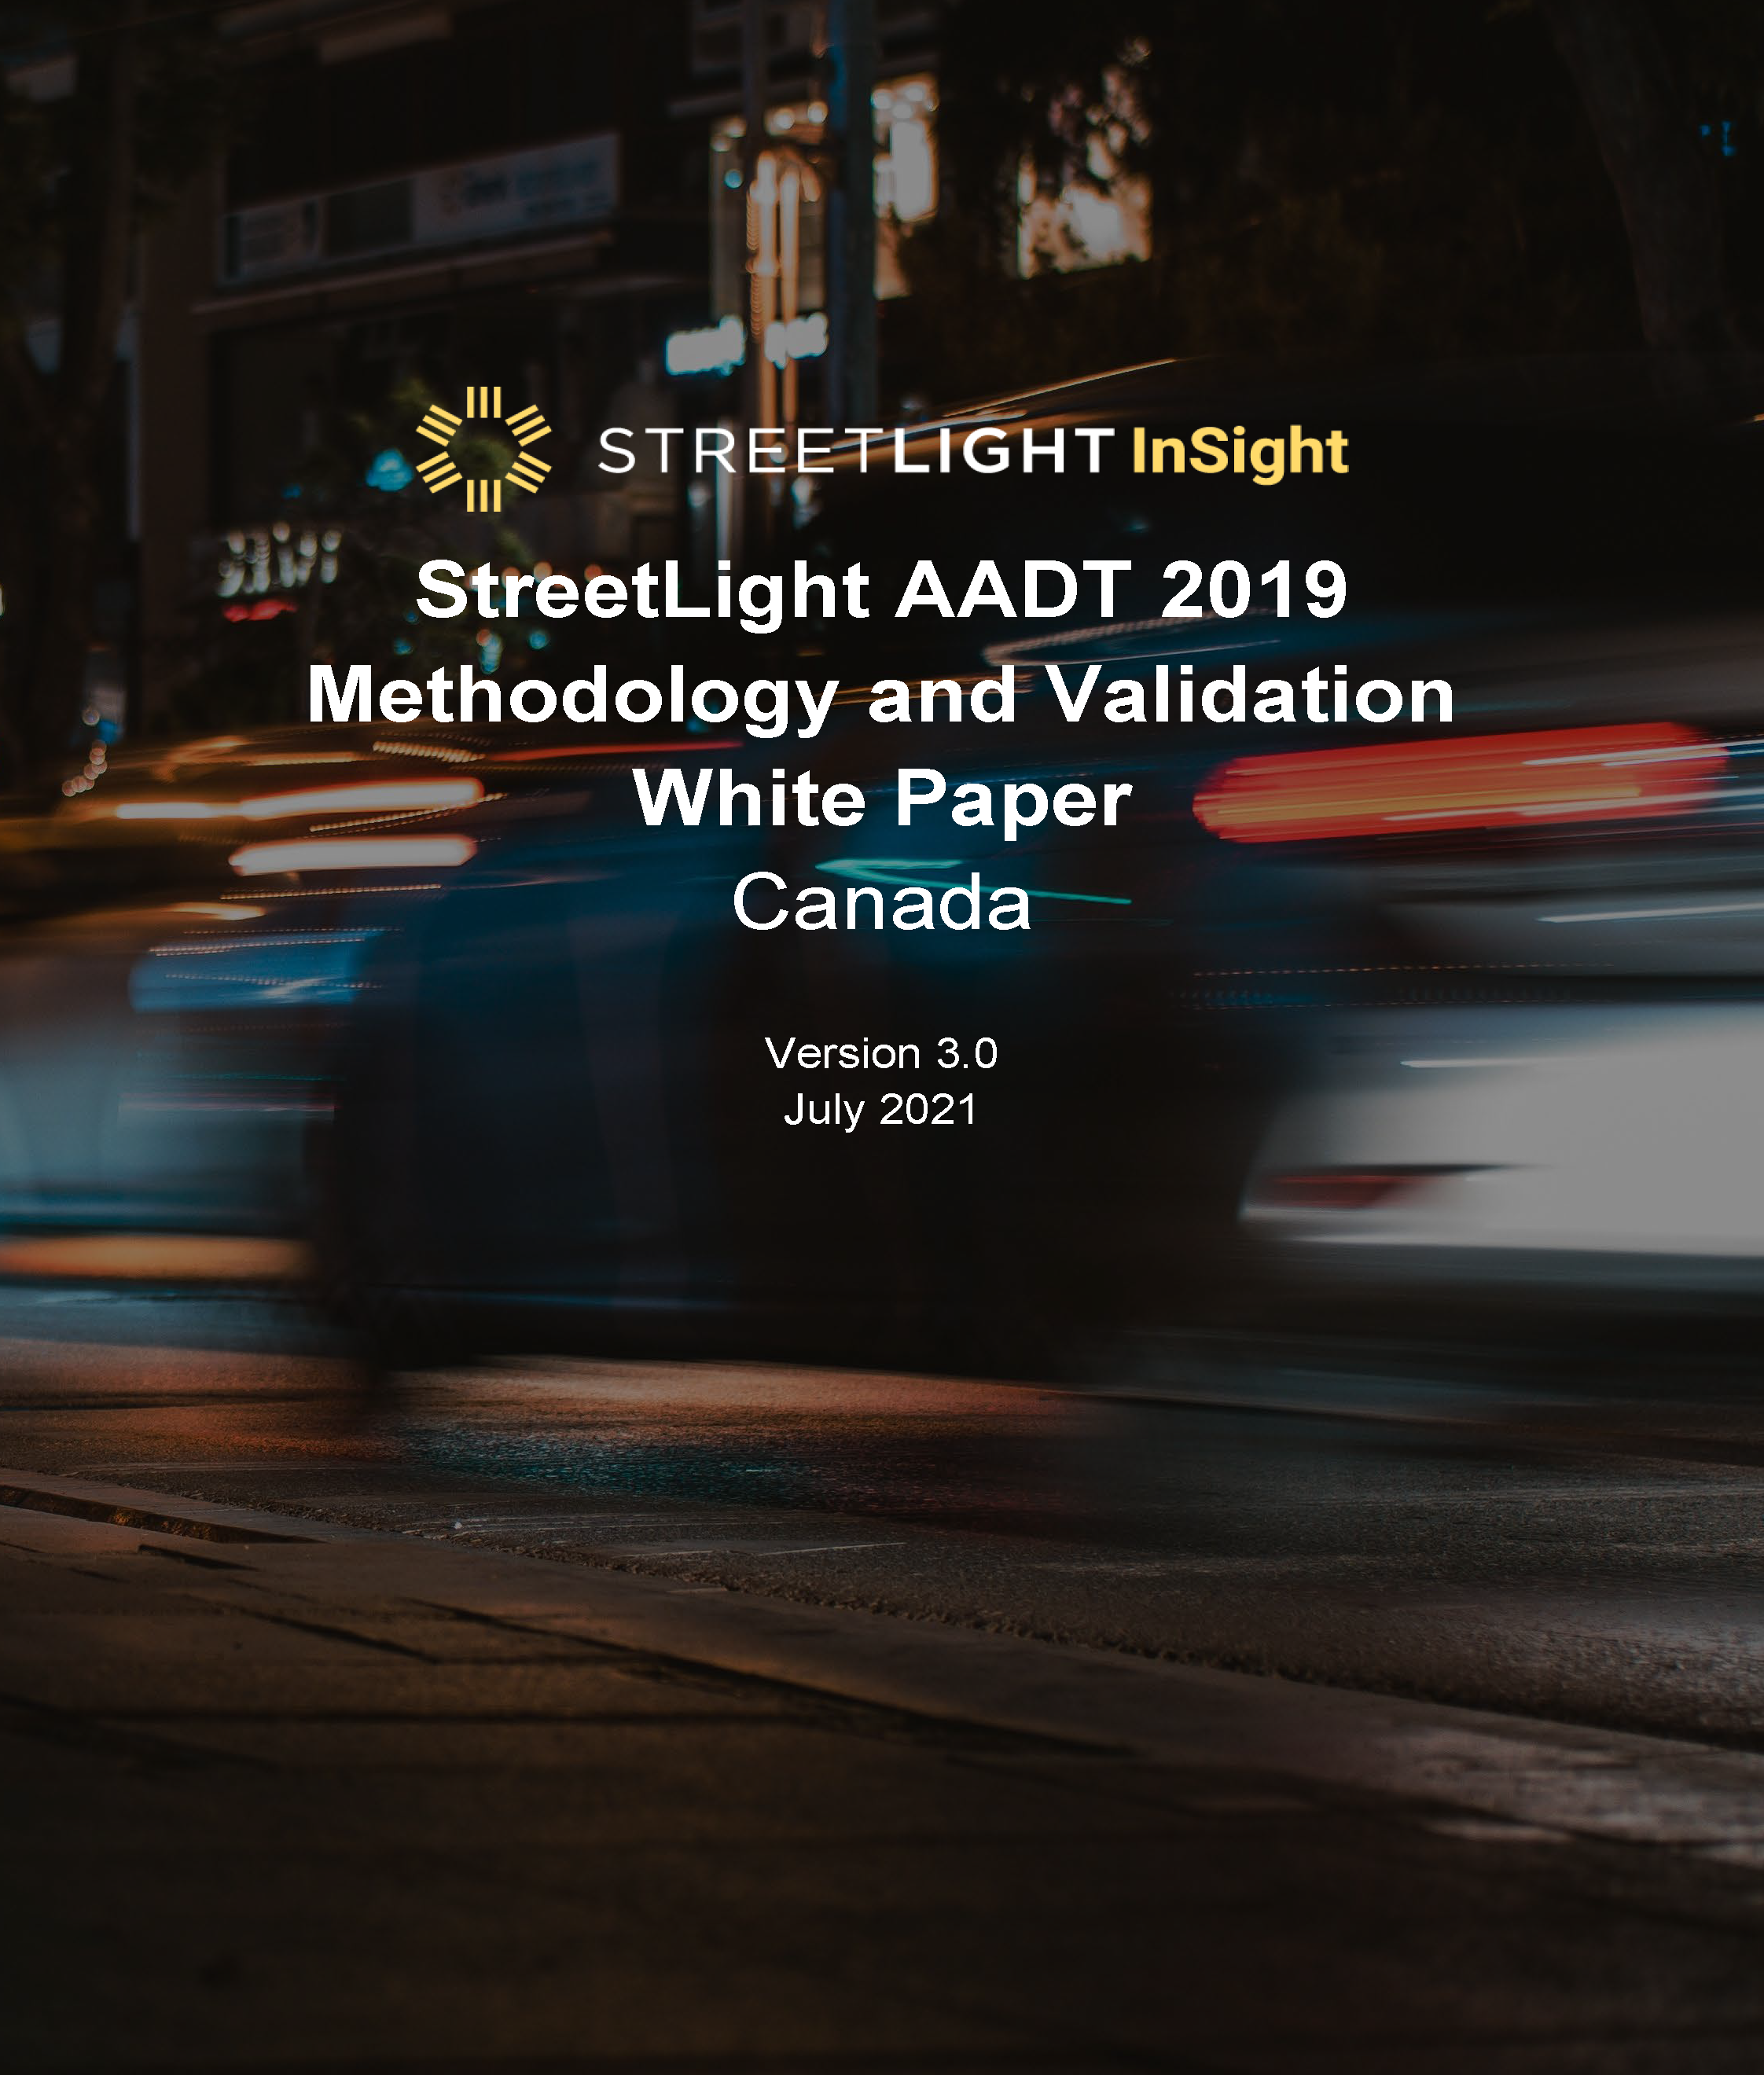 AADT 2019 Methodology and Validation White Paper Canada